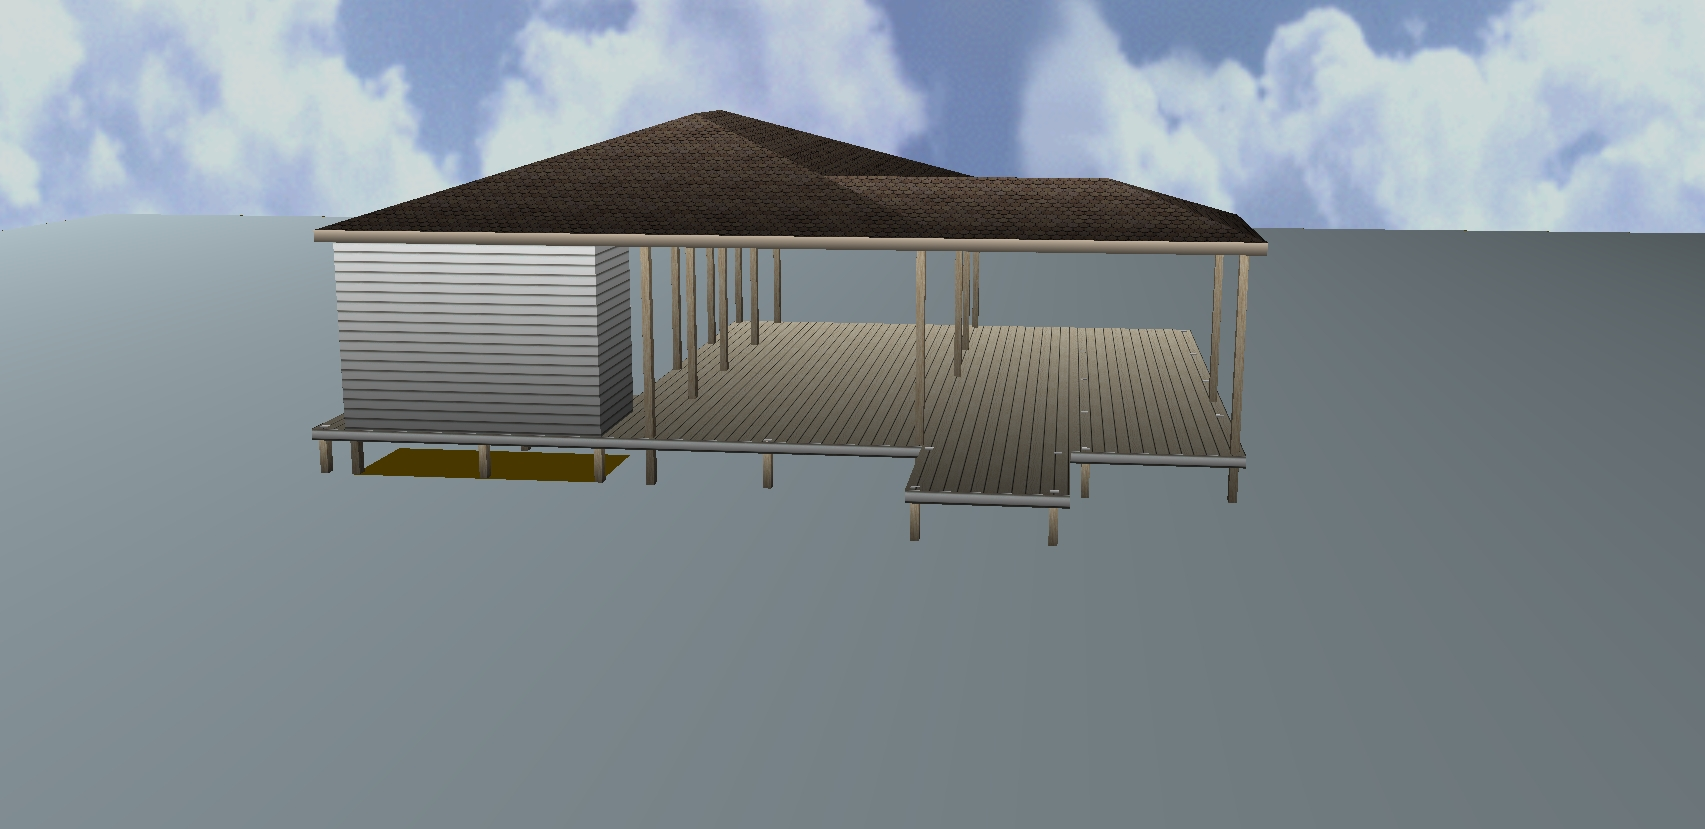 Designing a Boathouse - Want to Hire a Draftsman - AutoCad/SketchUP